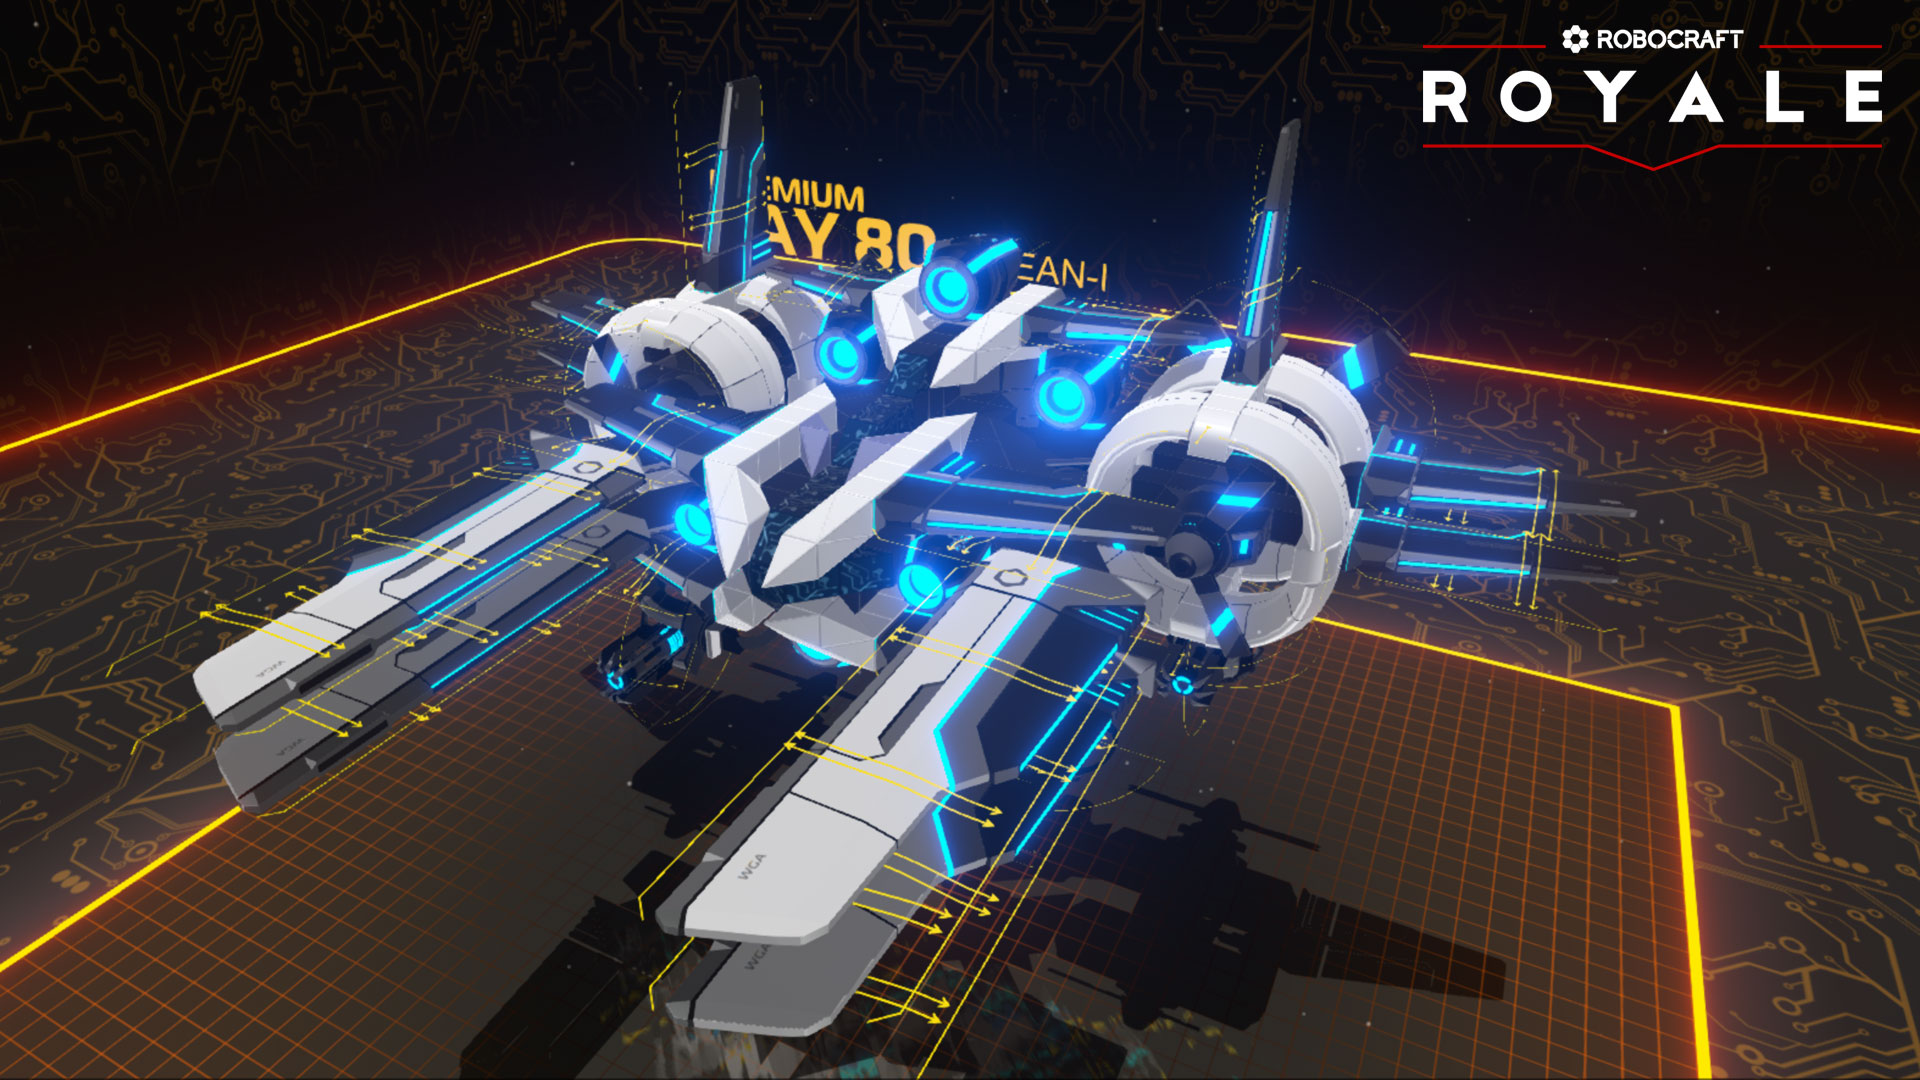 Robocraft Royale - an Experiment by Freejam news - Indie DB